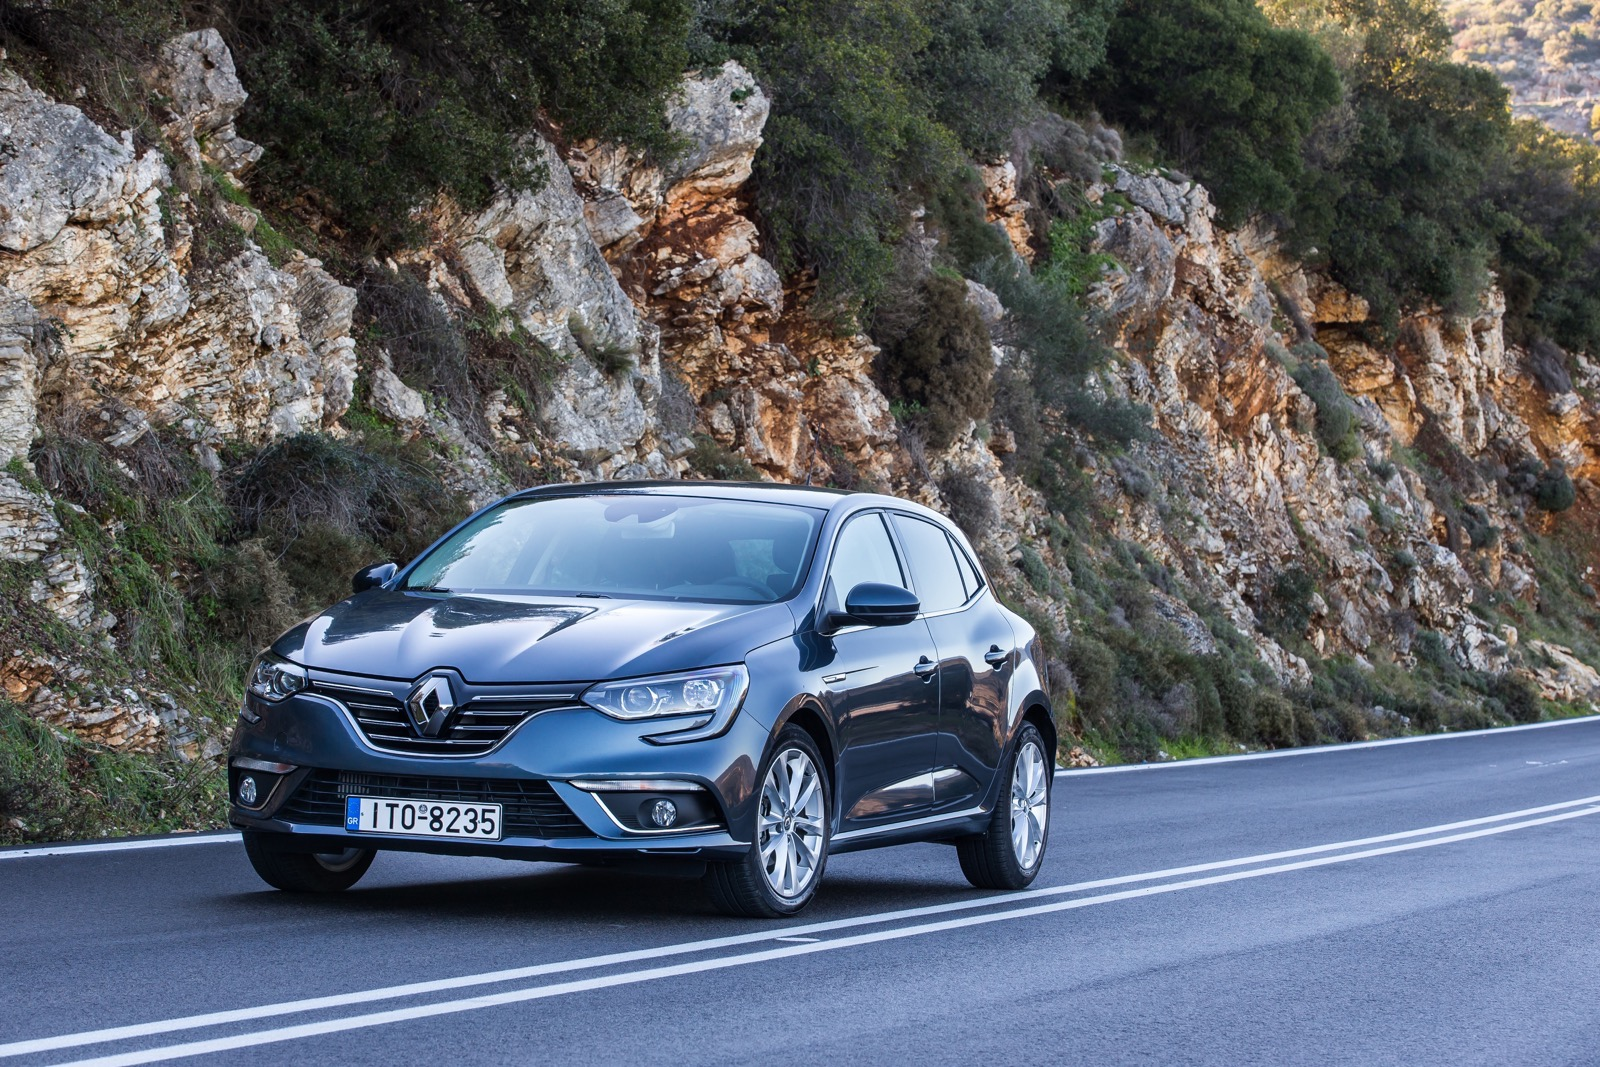 First_Drive_Renault_Megane_32